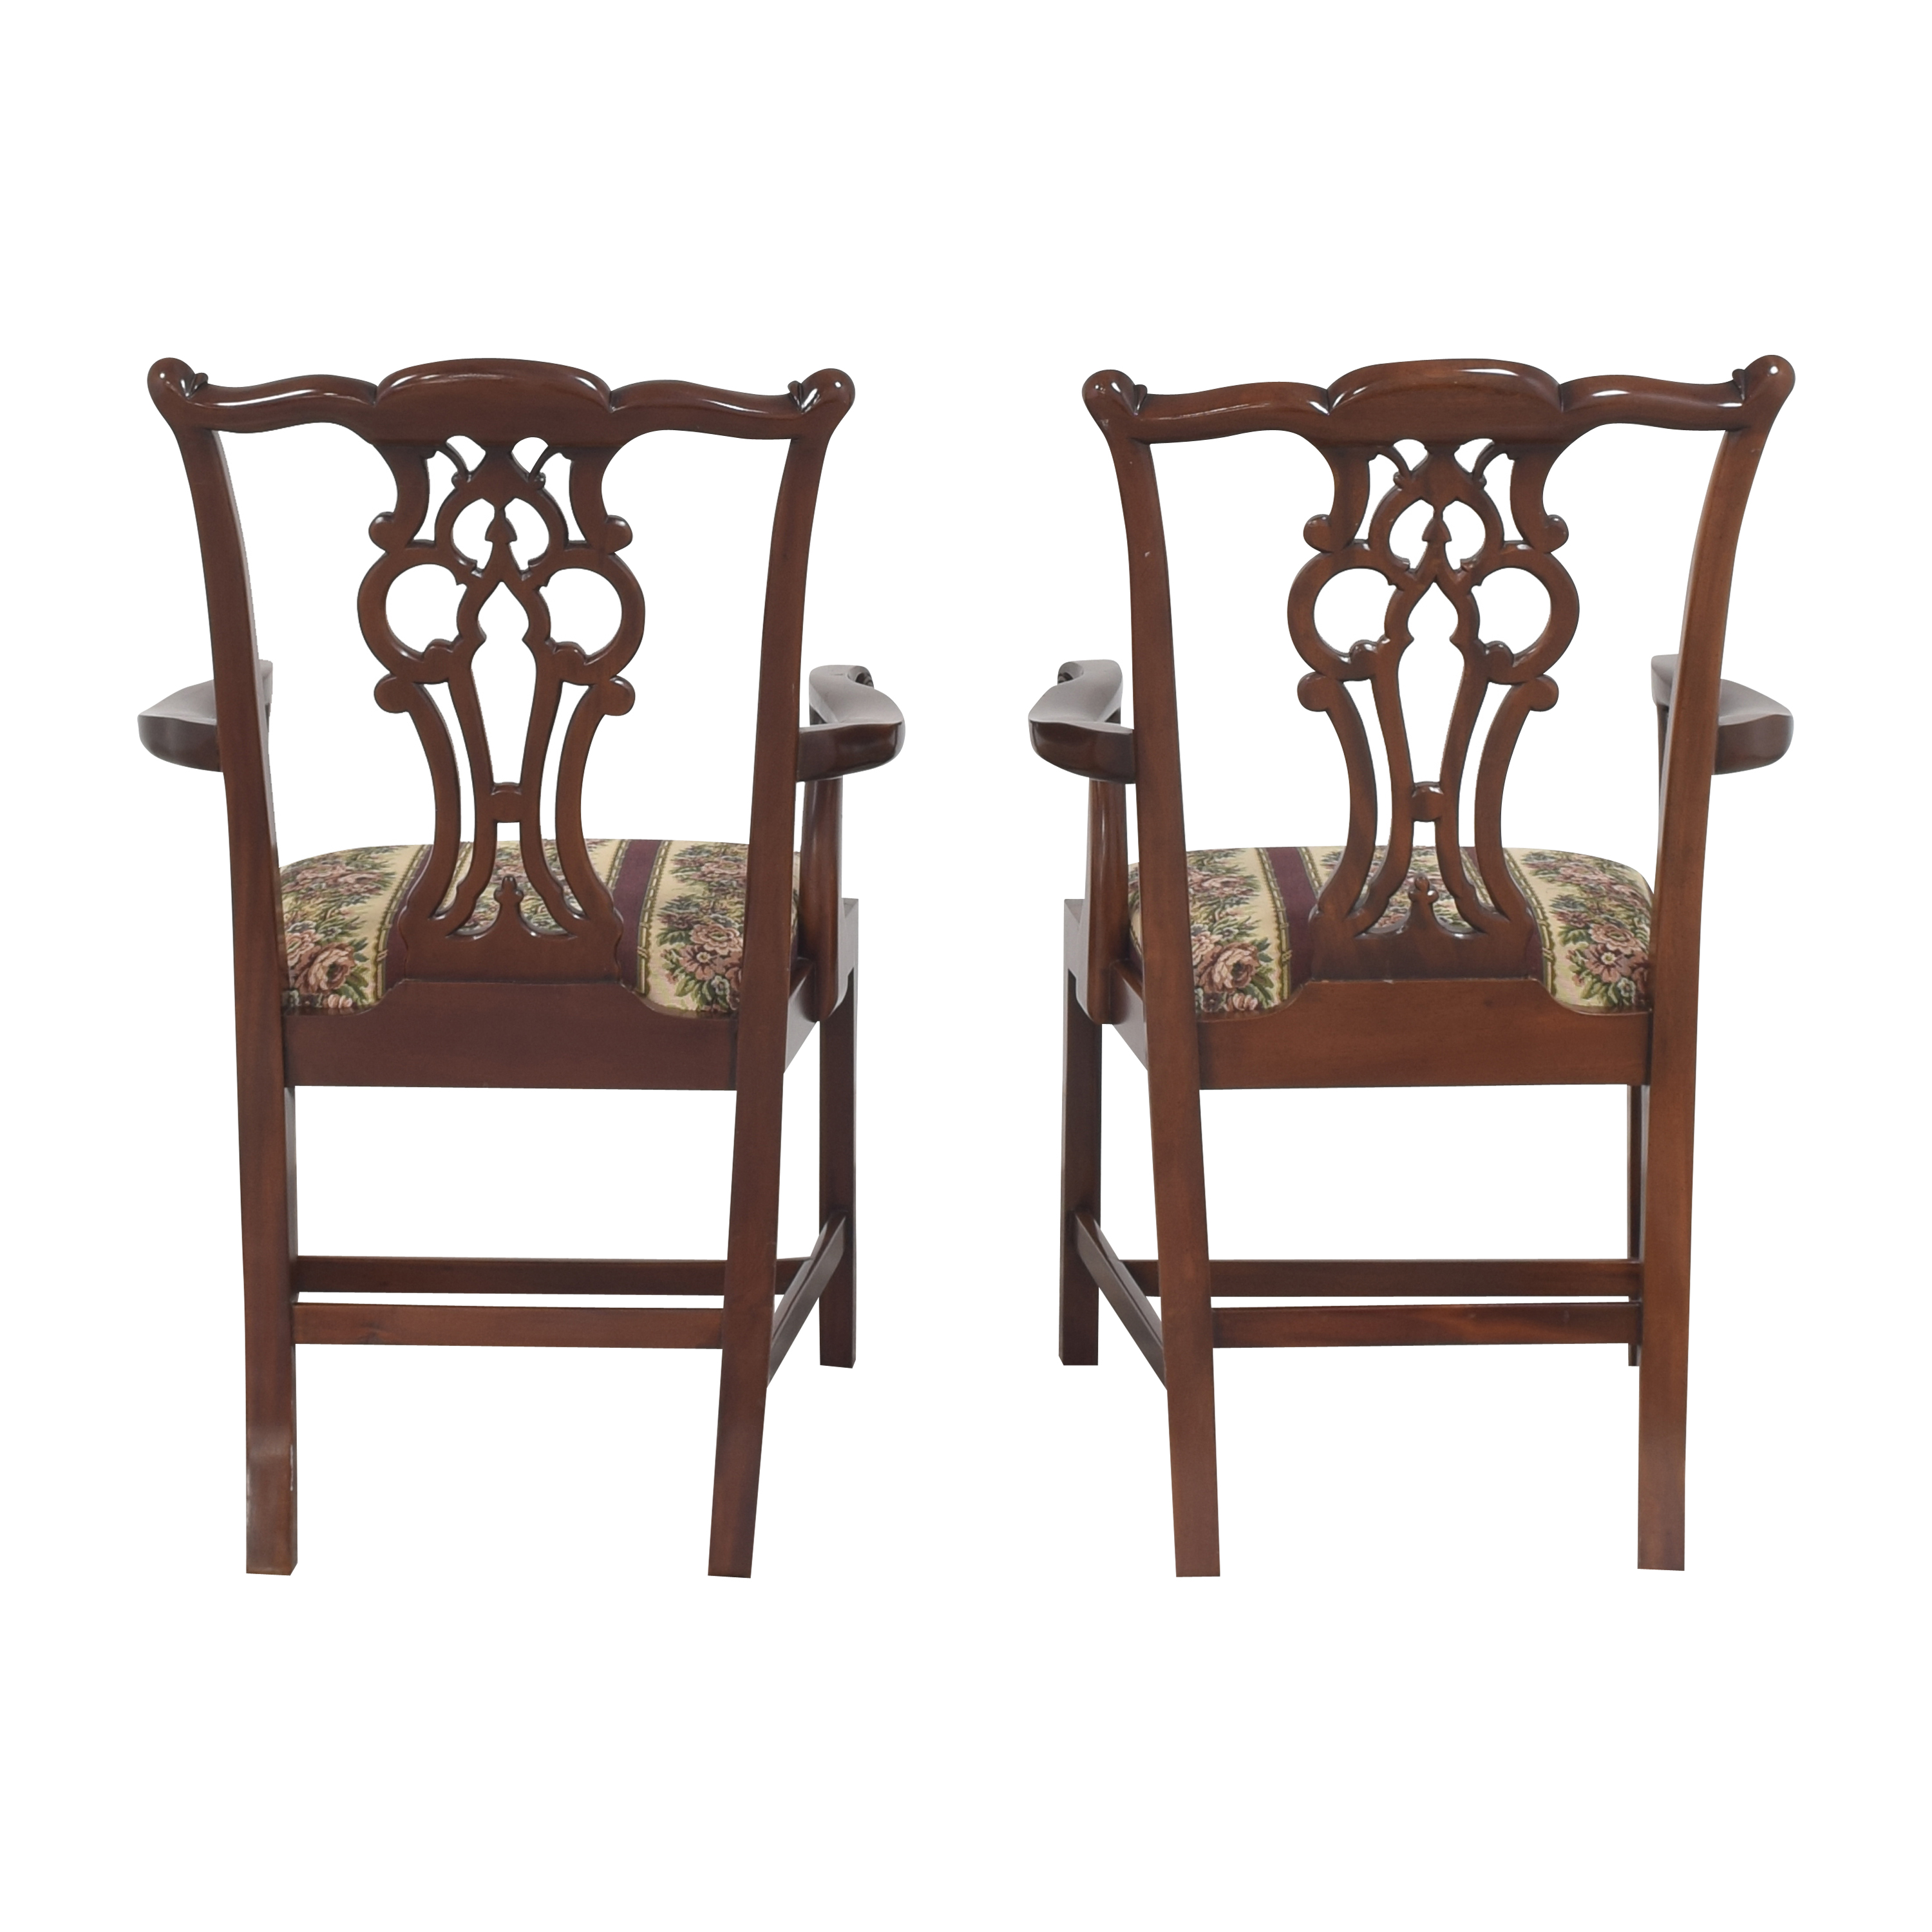 Maitland-Smith Maitland-Smith Chippendale Upholstered Dining Arm Chairs Chairs